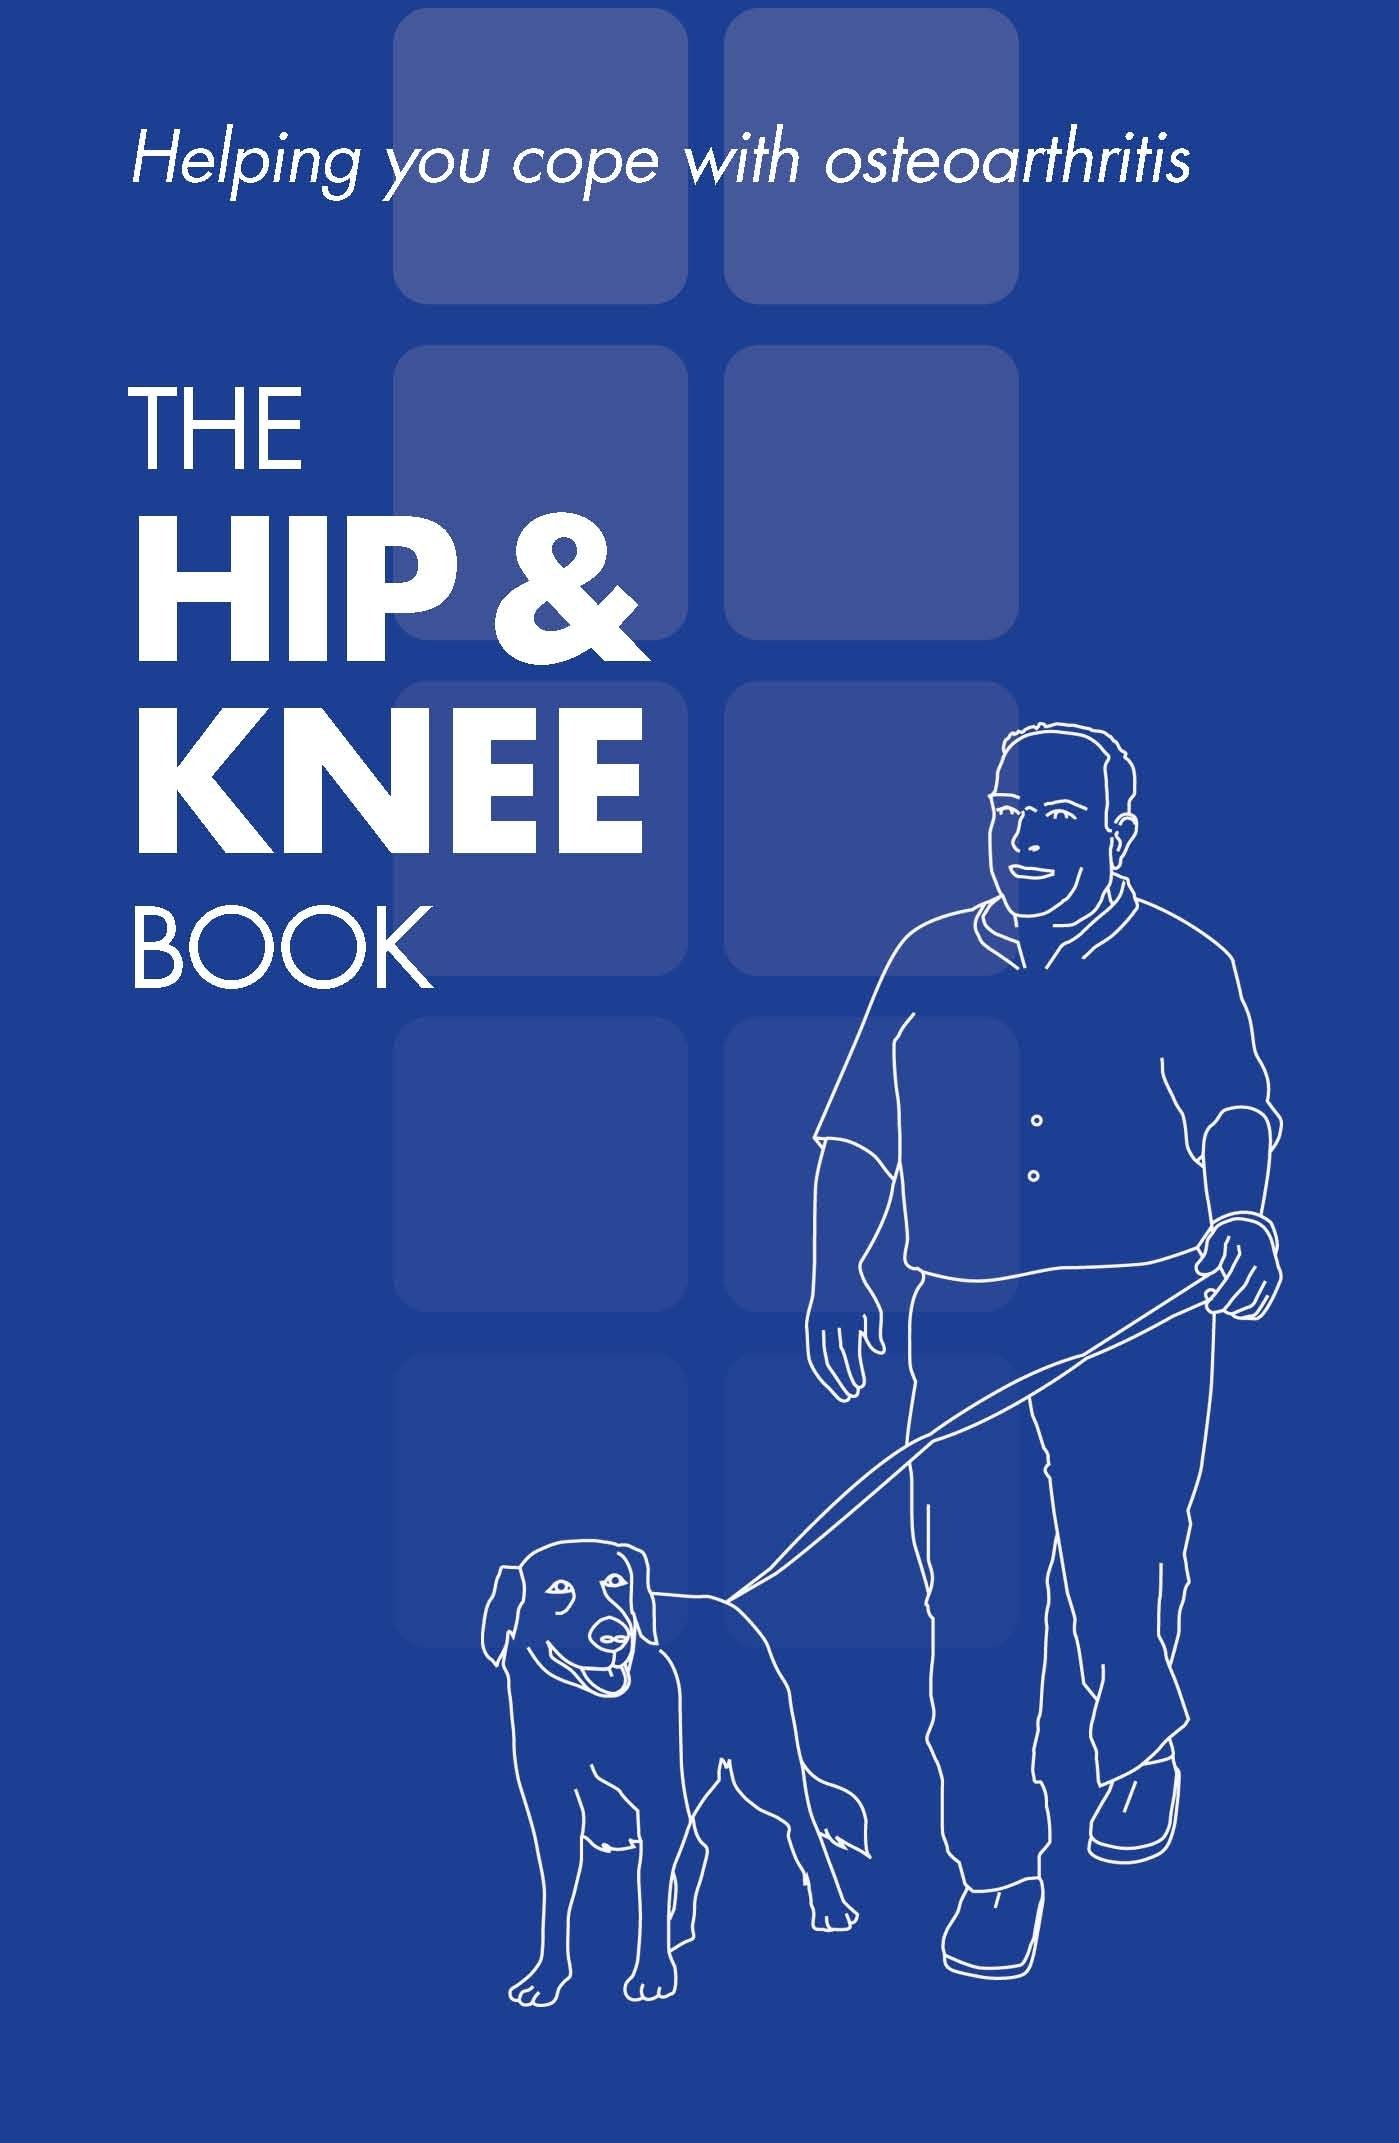 The Hip & Knee Book